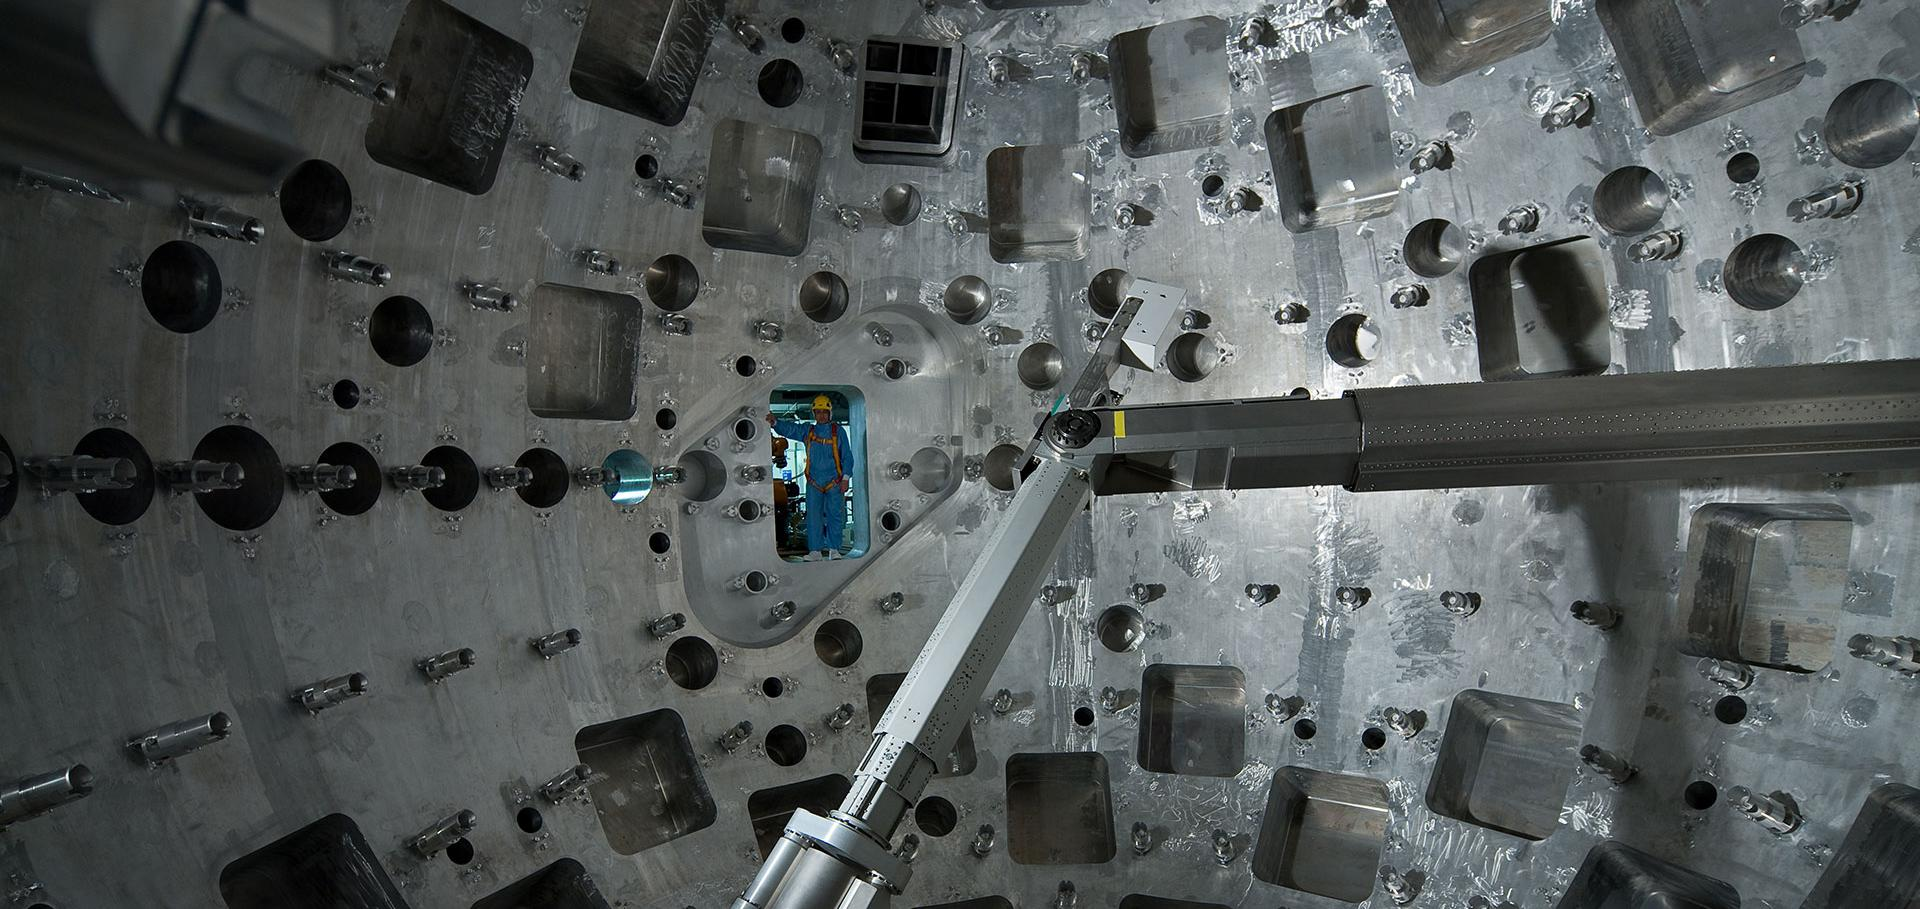 Image of the LMJ target chamber